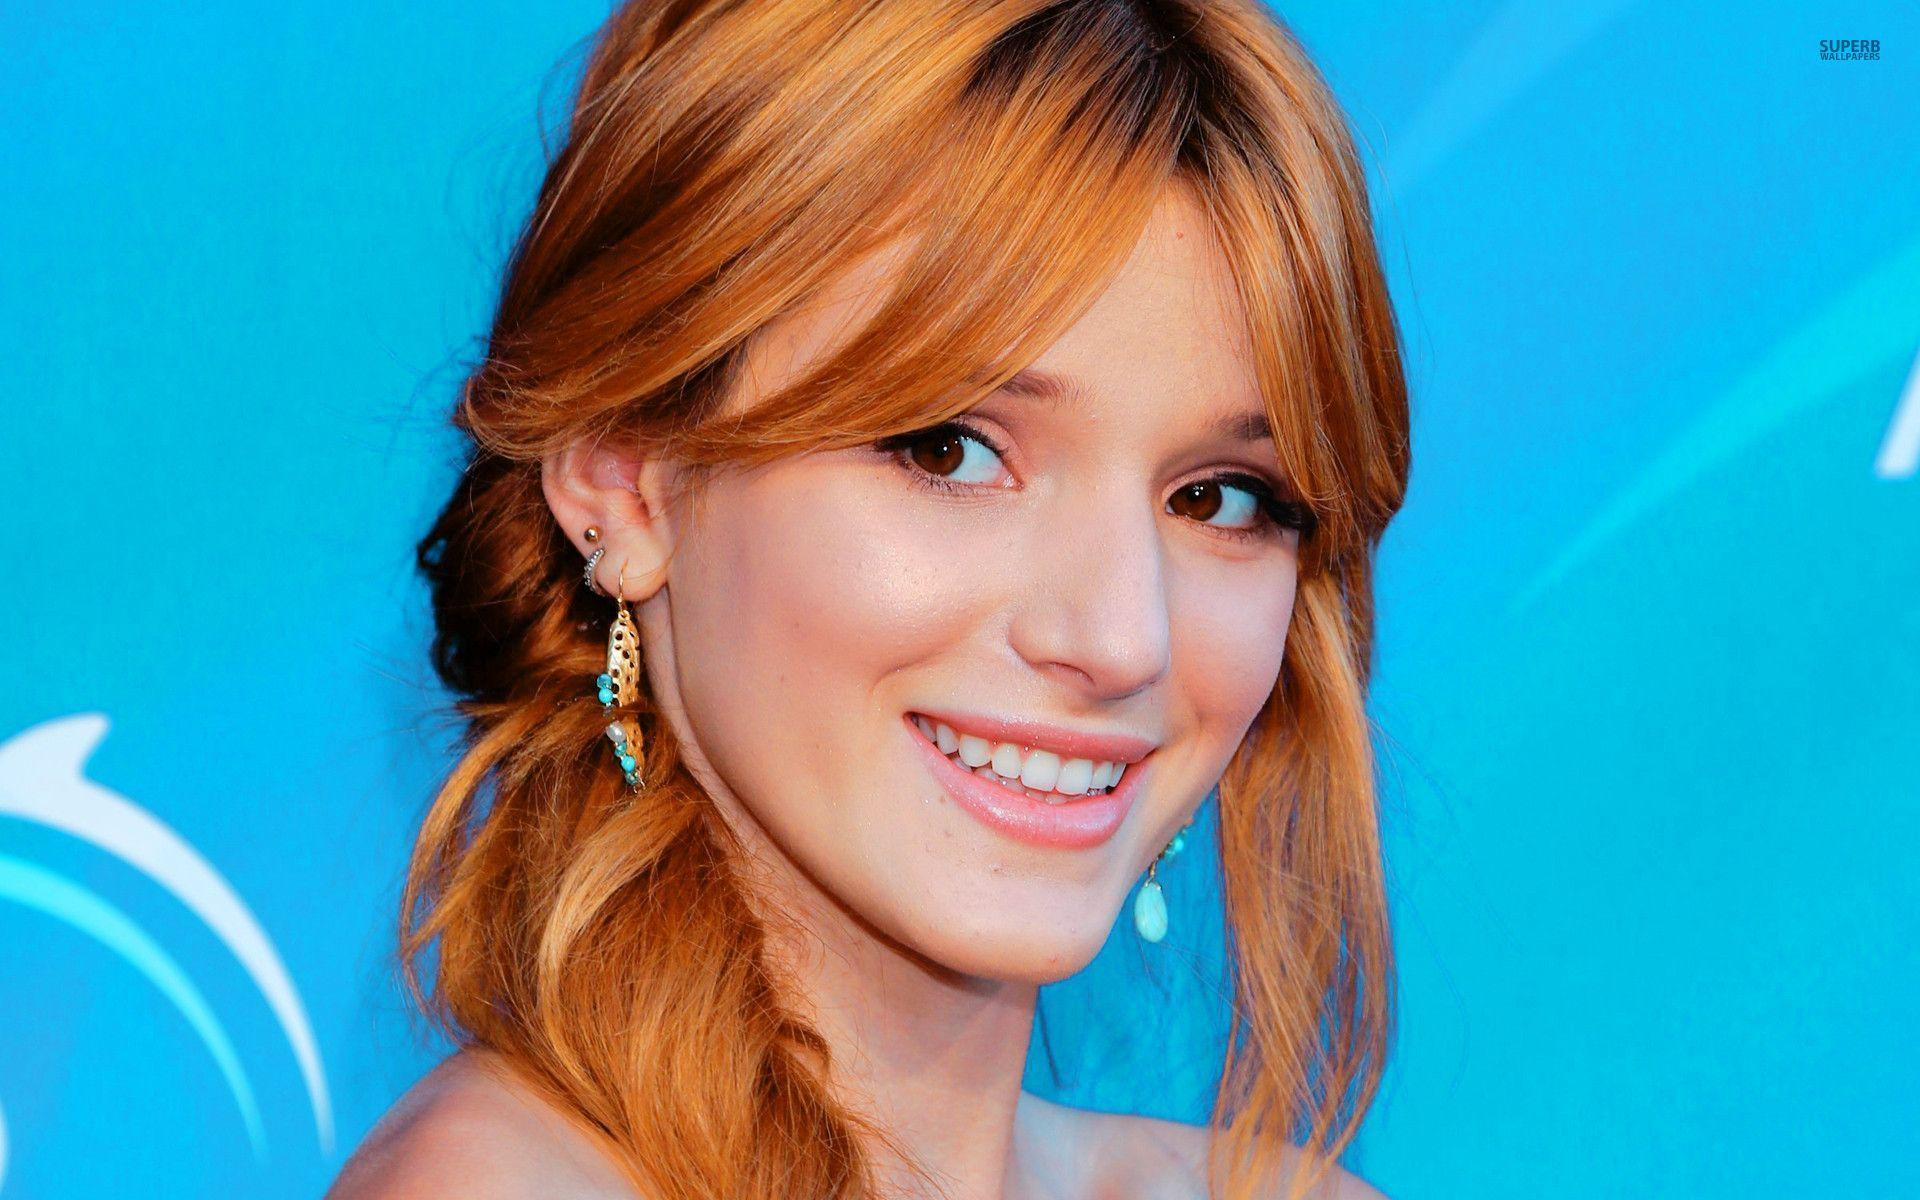 Bella Thorne was born in Pembroke Pines Florida to Tamara Beckett and Delancey Reinaldo Rey Thorne She has three siblings Remy Thorne Dani Thorne